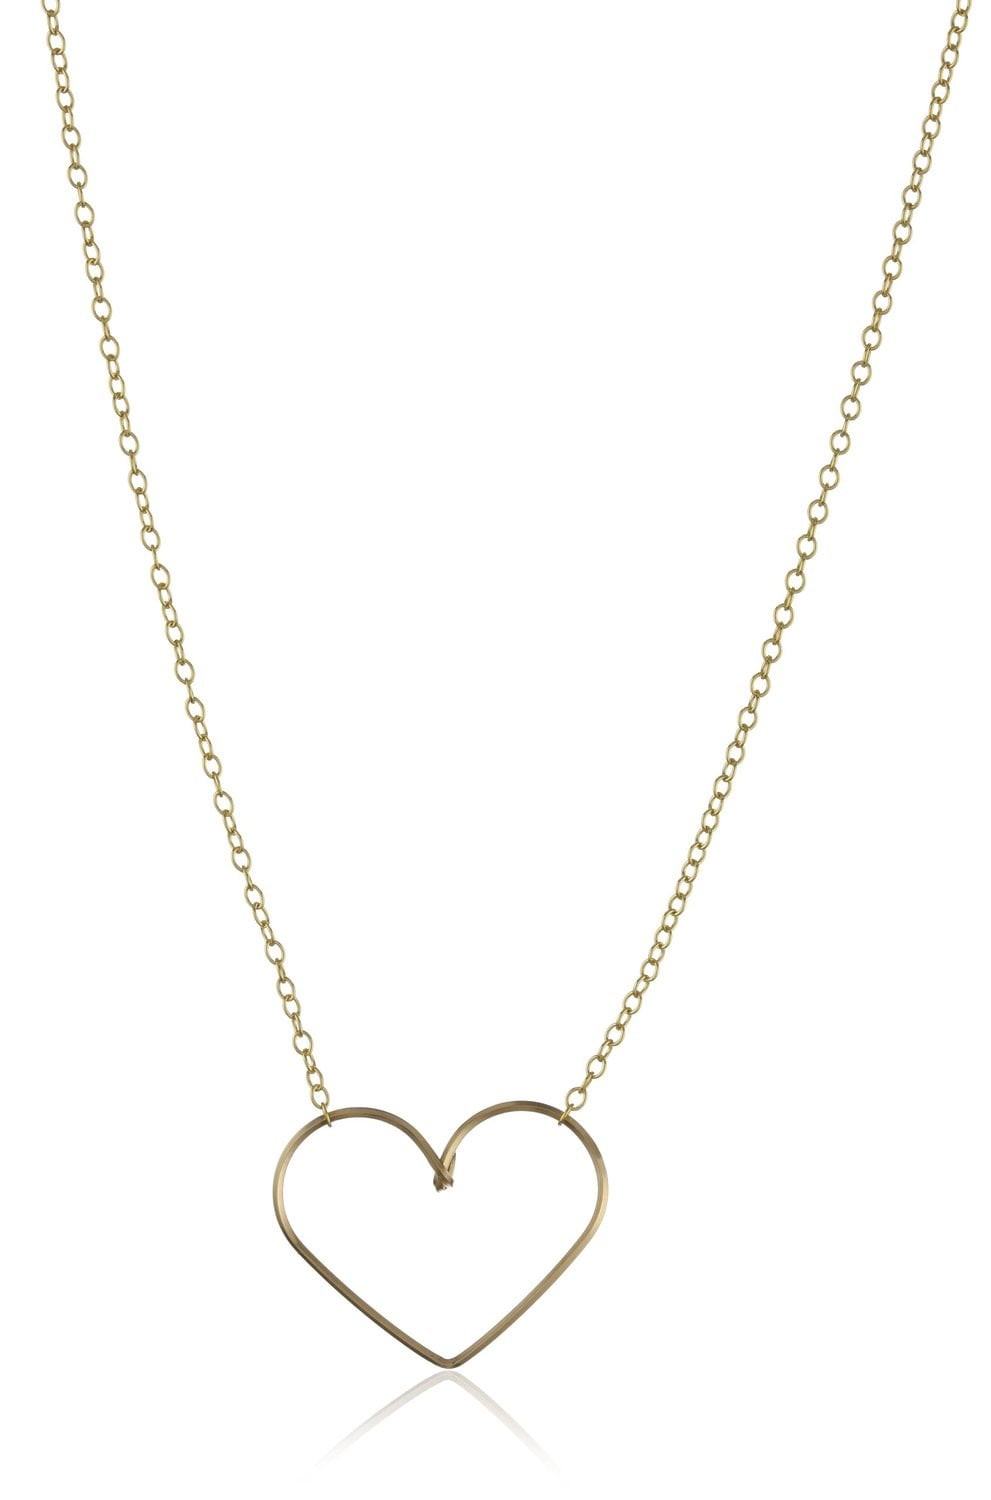 By Boe My Heart Necklace